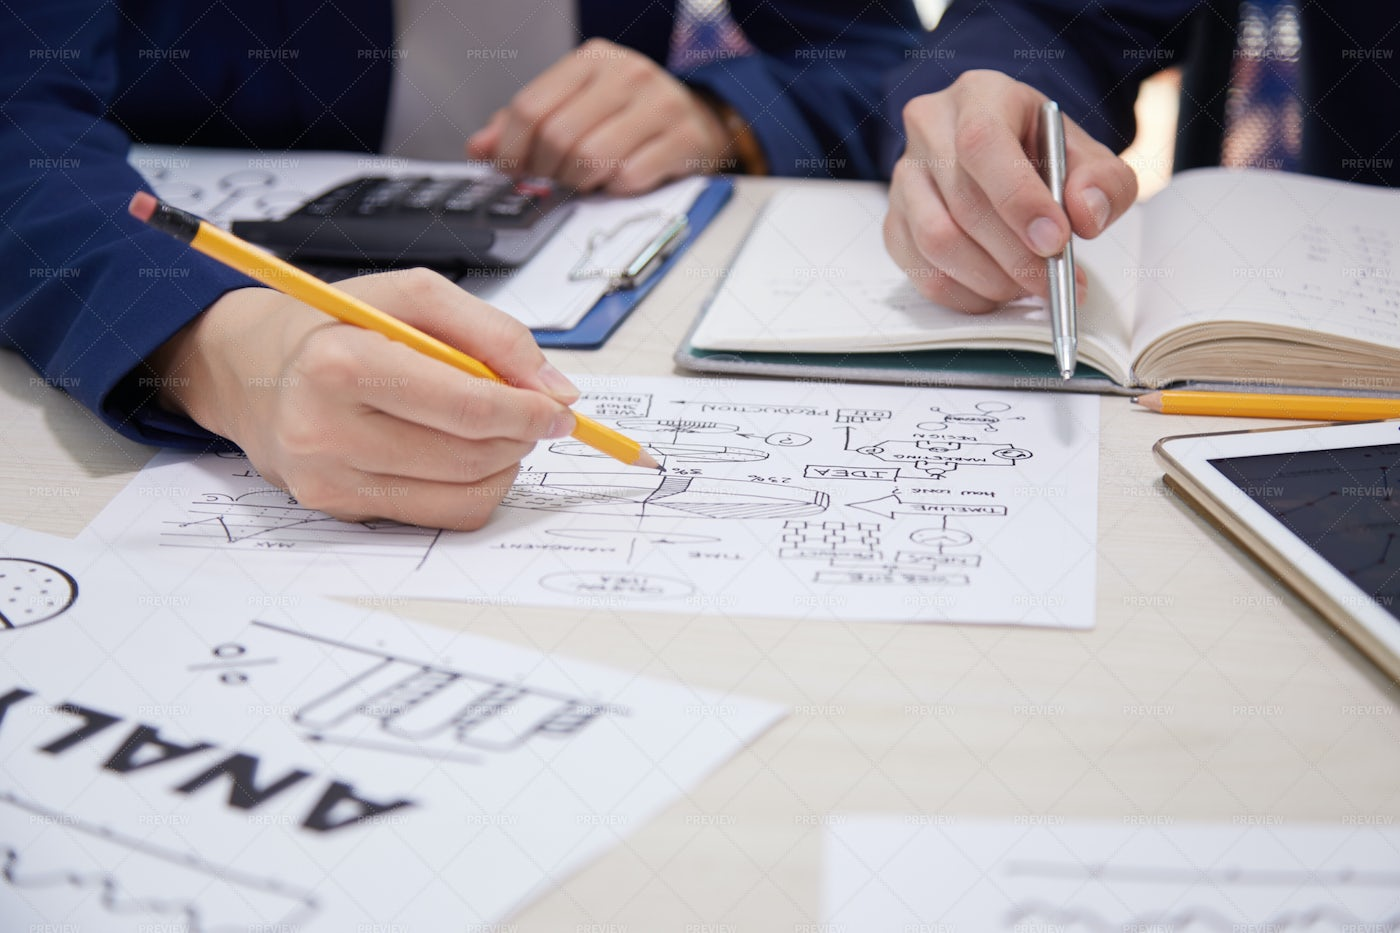 Business People Creating Business Plan: Stock Photos